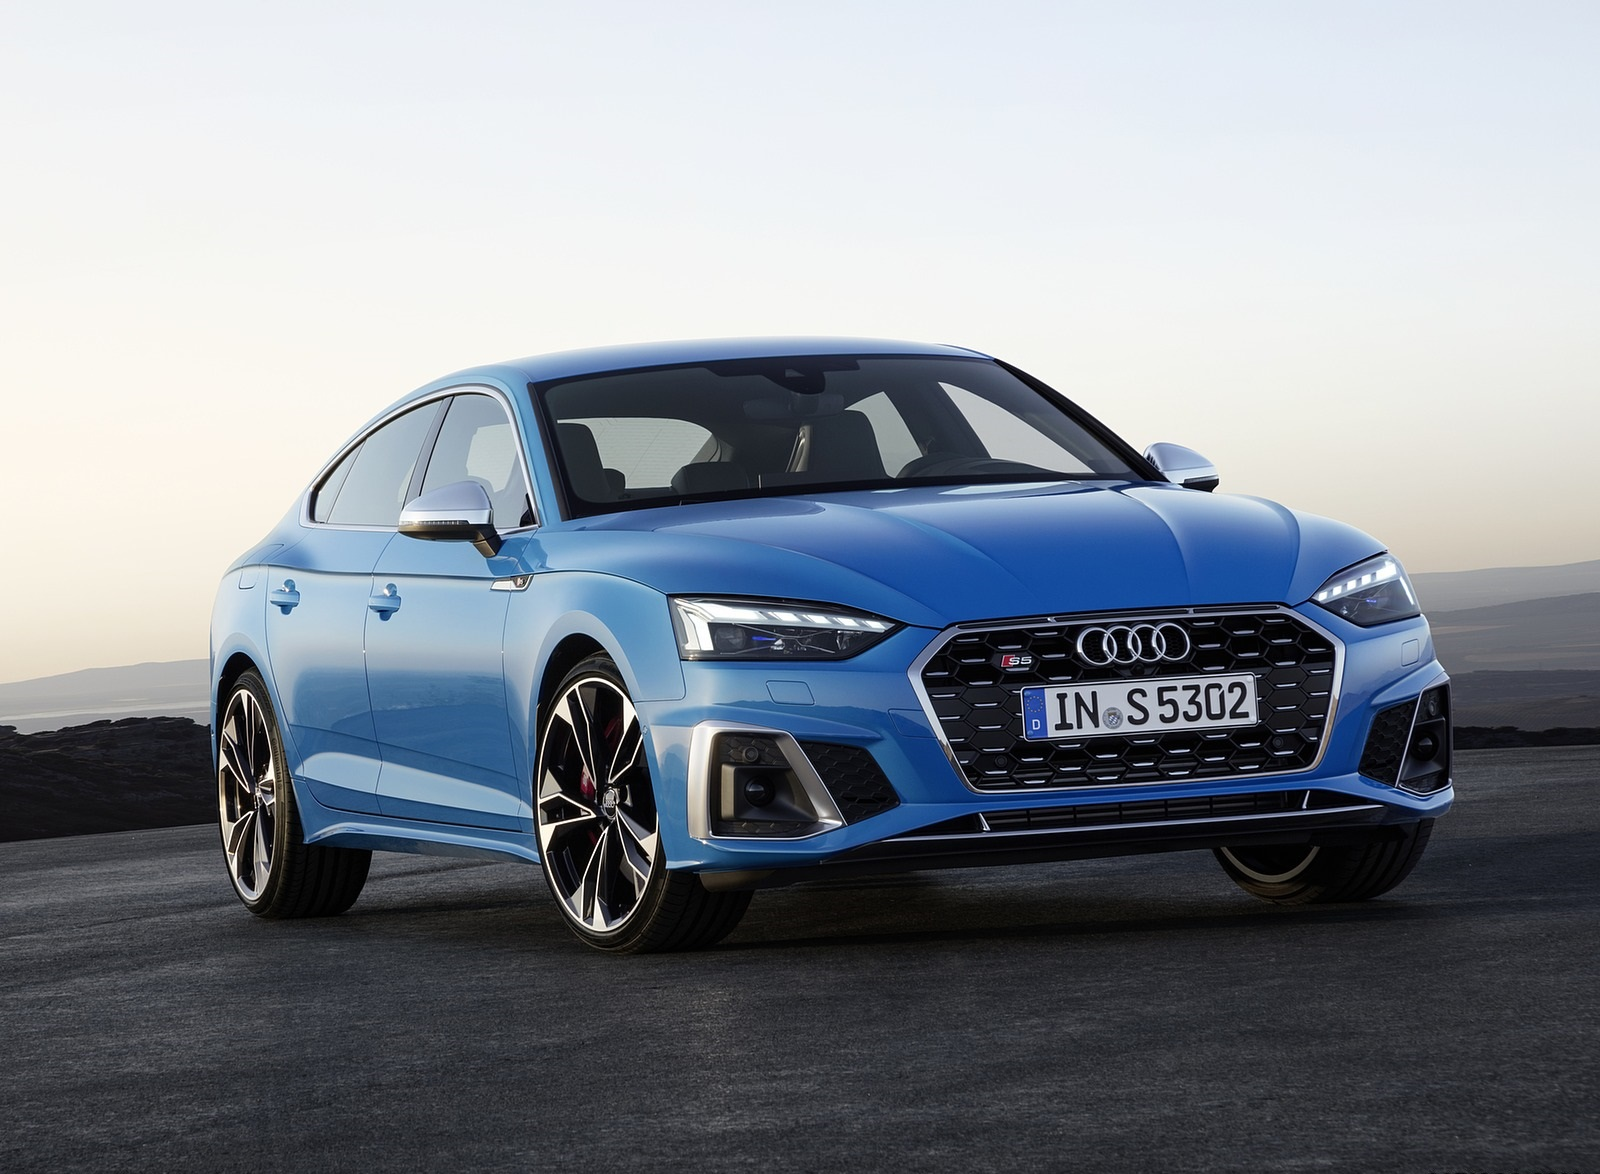 2020 Audi S5 Sportback TDI (Color: Turbo Blue) Front Three-Quarter Wallpapers (9)